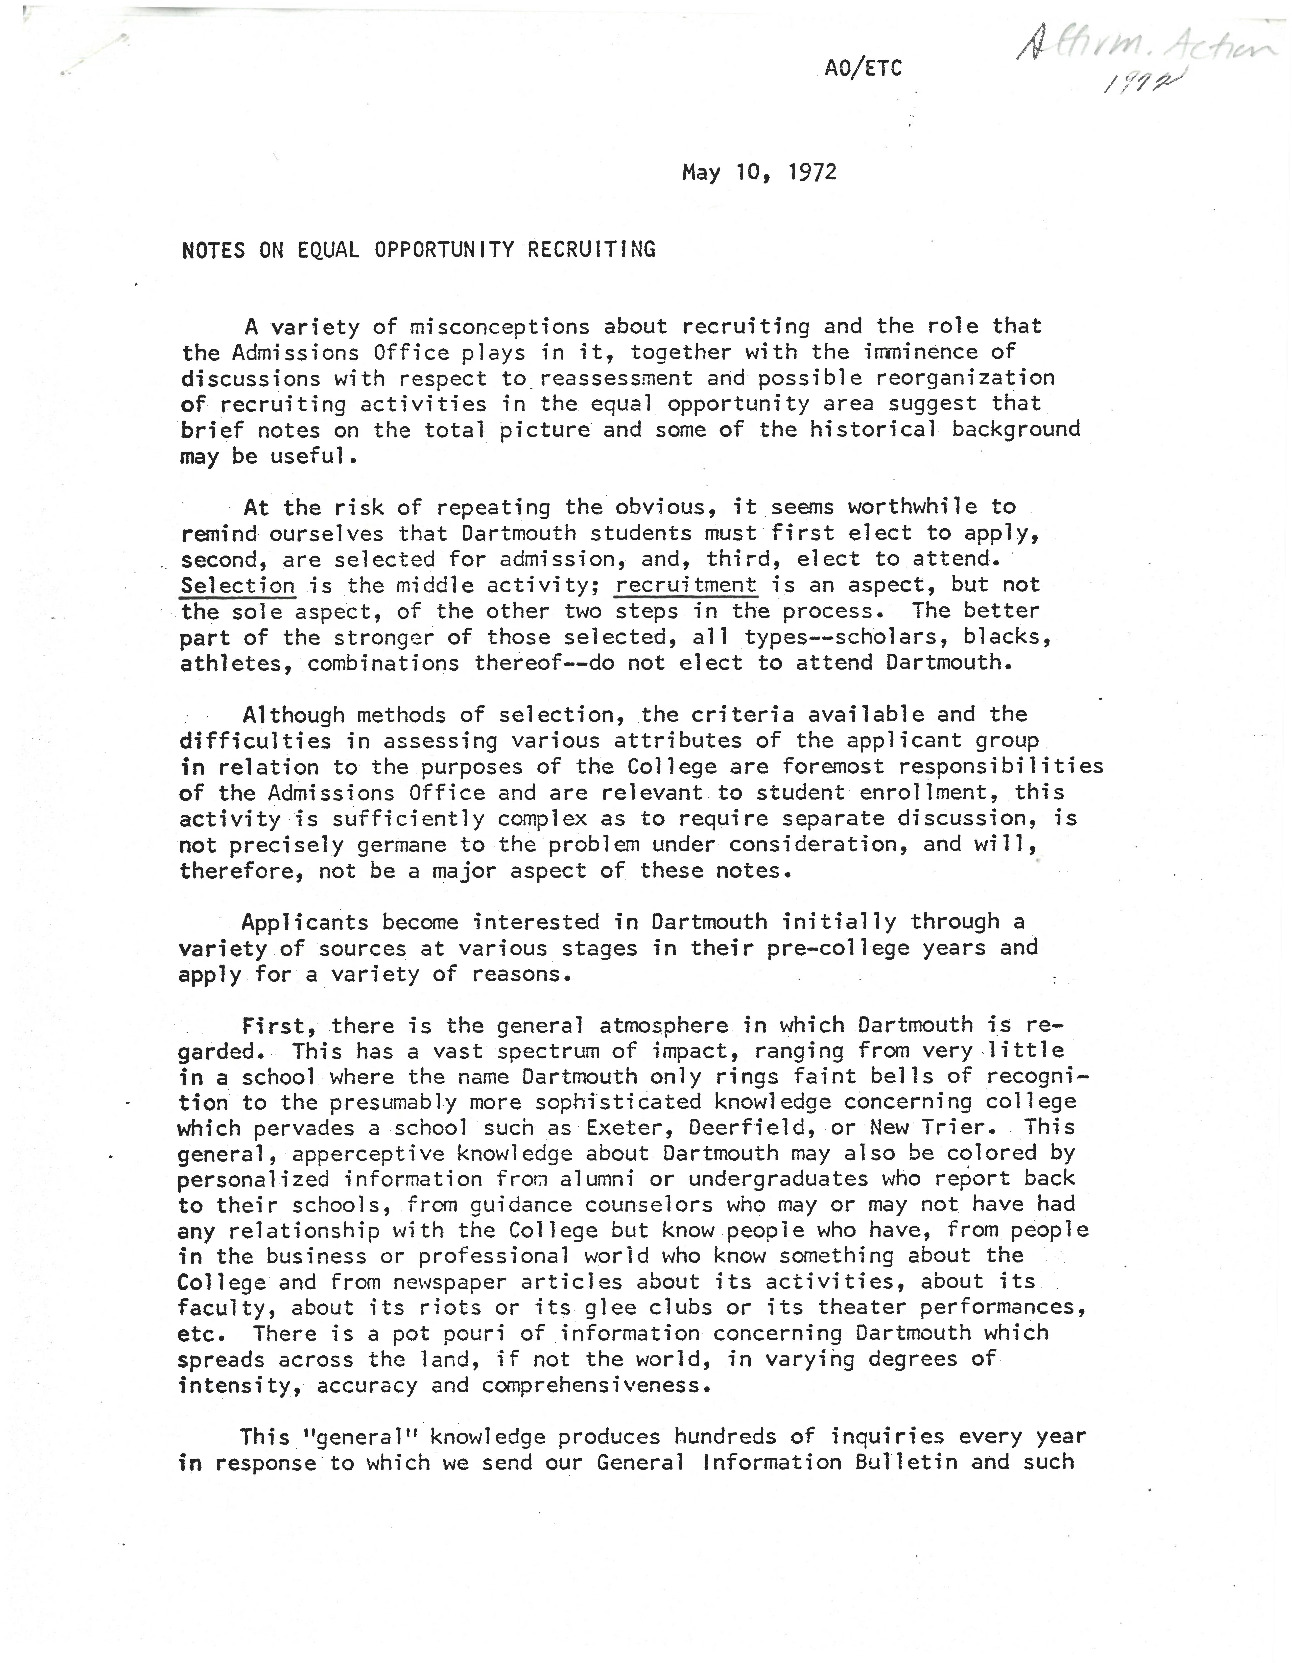 """Admissions Officer Edward T. Chamberlain's notes on equal opportunity recruitment include an appendix with the """"three term plan"""" by students in the Dartmouth Afro-American Society to encourage more Black students to apply to Dartmouth College. The self-appointed Black Student Application Encouragement Committee (BSAEC) outlines costs incurred by student recruiters and recruitment tactics in the form of on-site high school visits, mailed letters and informational packets to prospective students, conference attendance, and calls or meetings with Black students accepted to the College."""